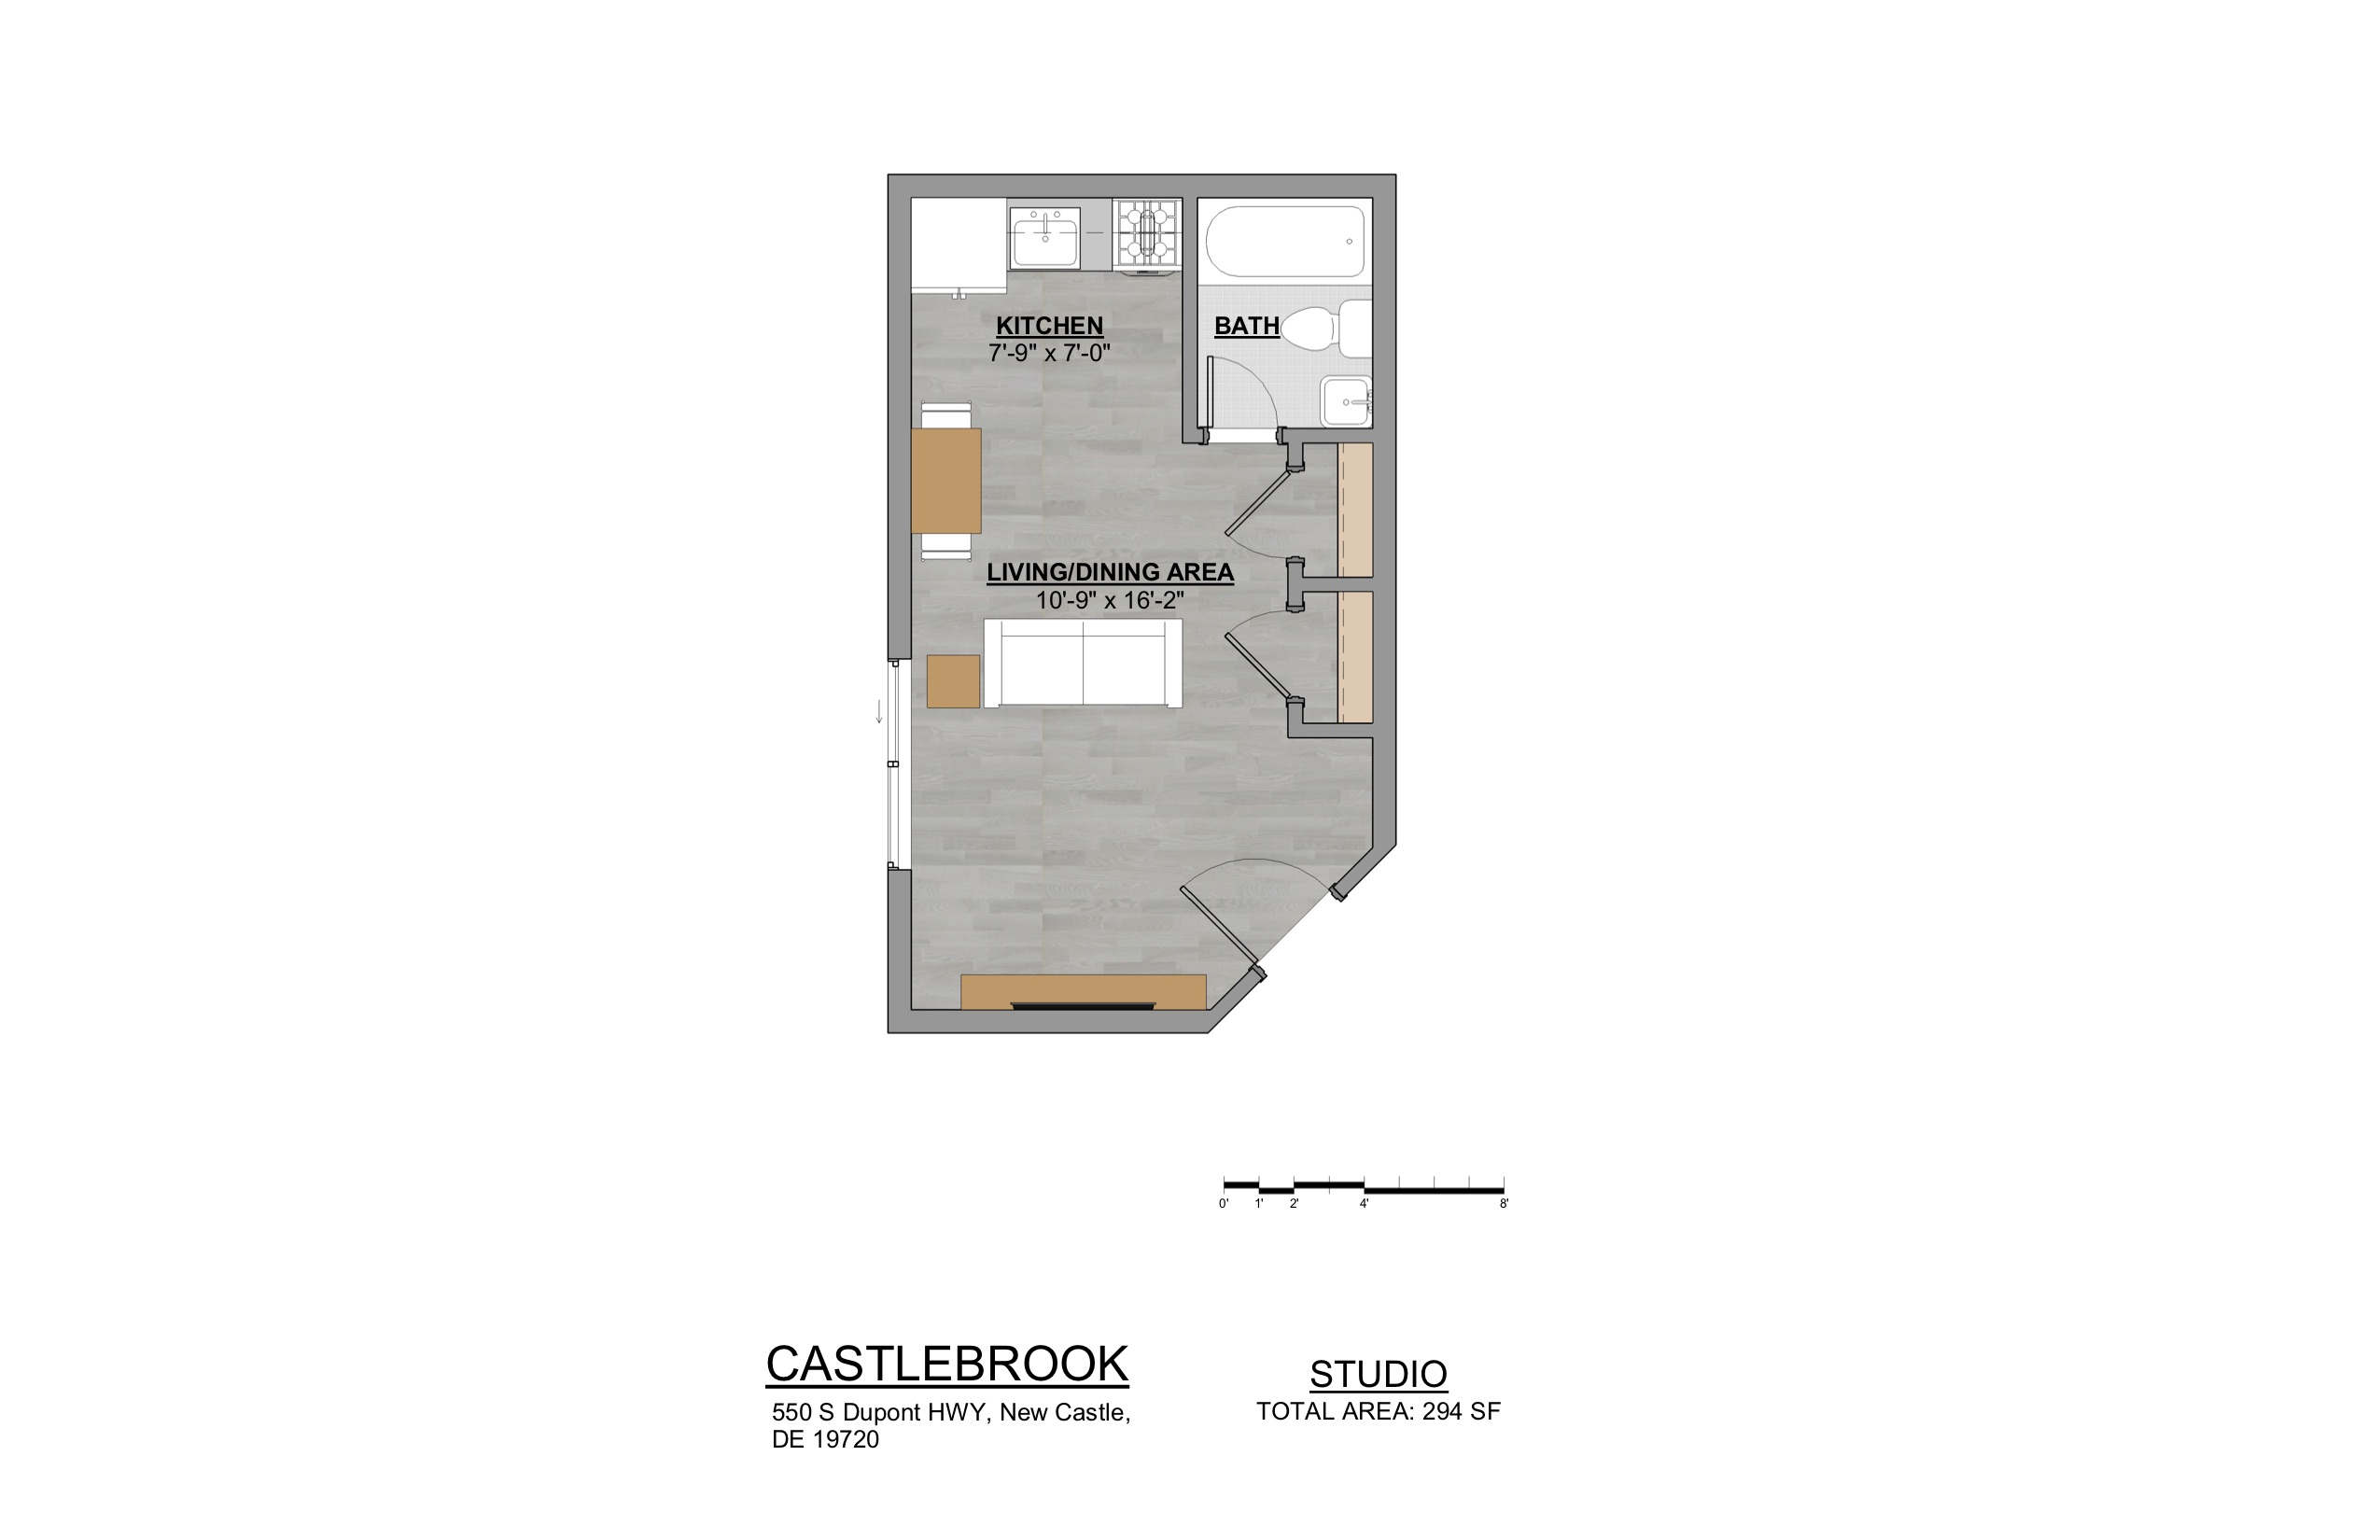 Castlebrook Apartments Studio